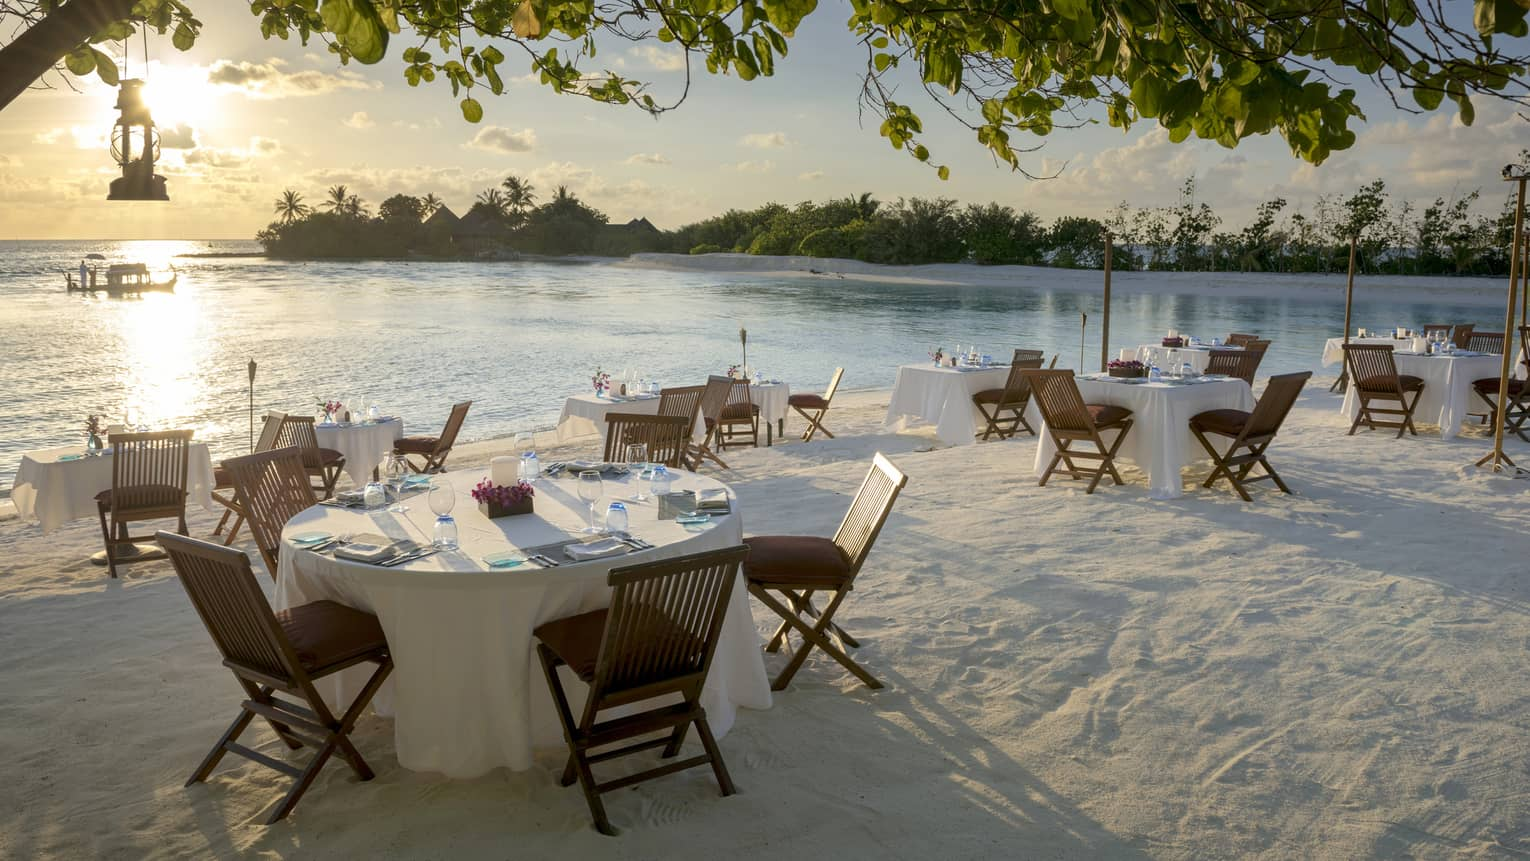 Tables set for dinner with wooden chairs on white sand by ocean shore